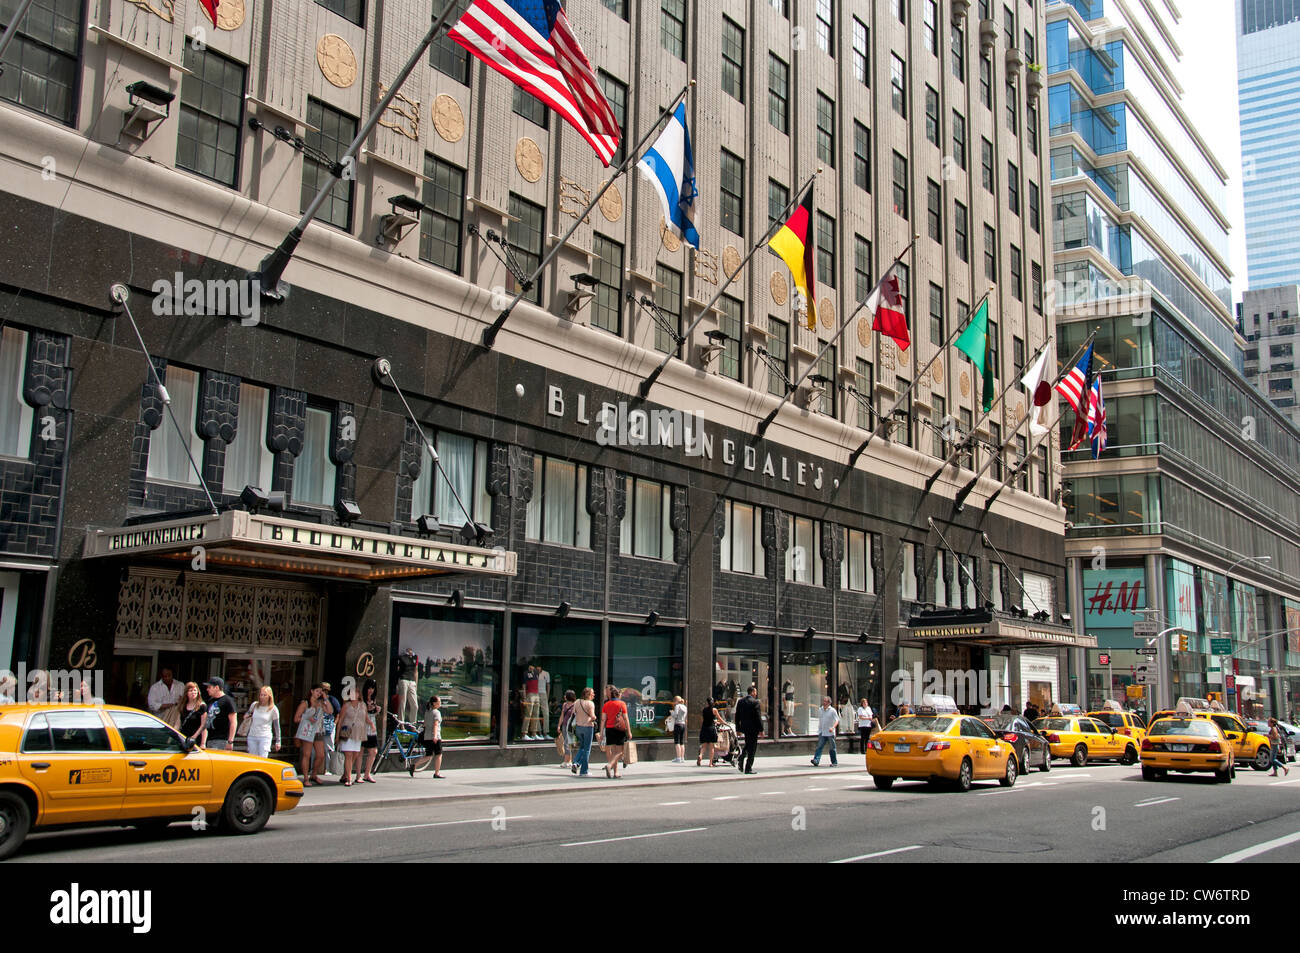 Bloomingdales Department Store Lexington Avenue Manhattan New York City United States Of America